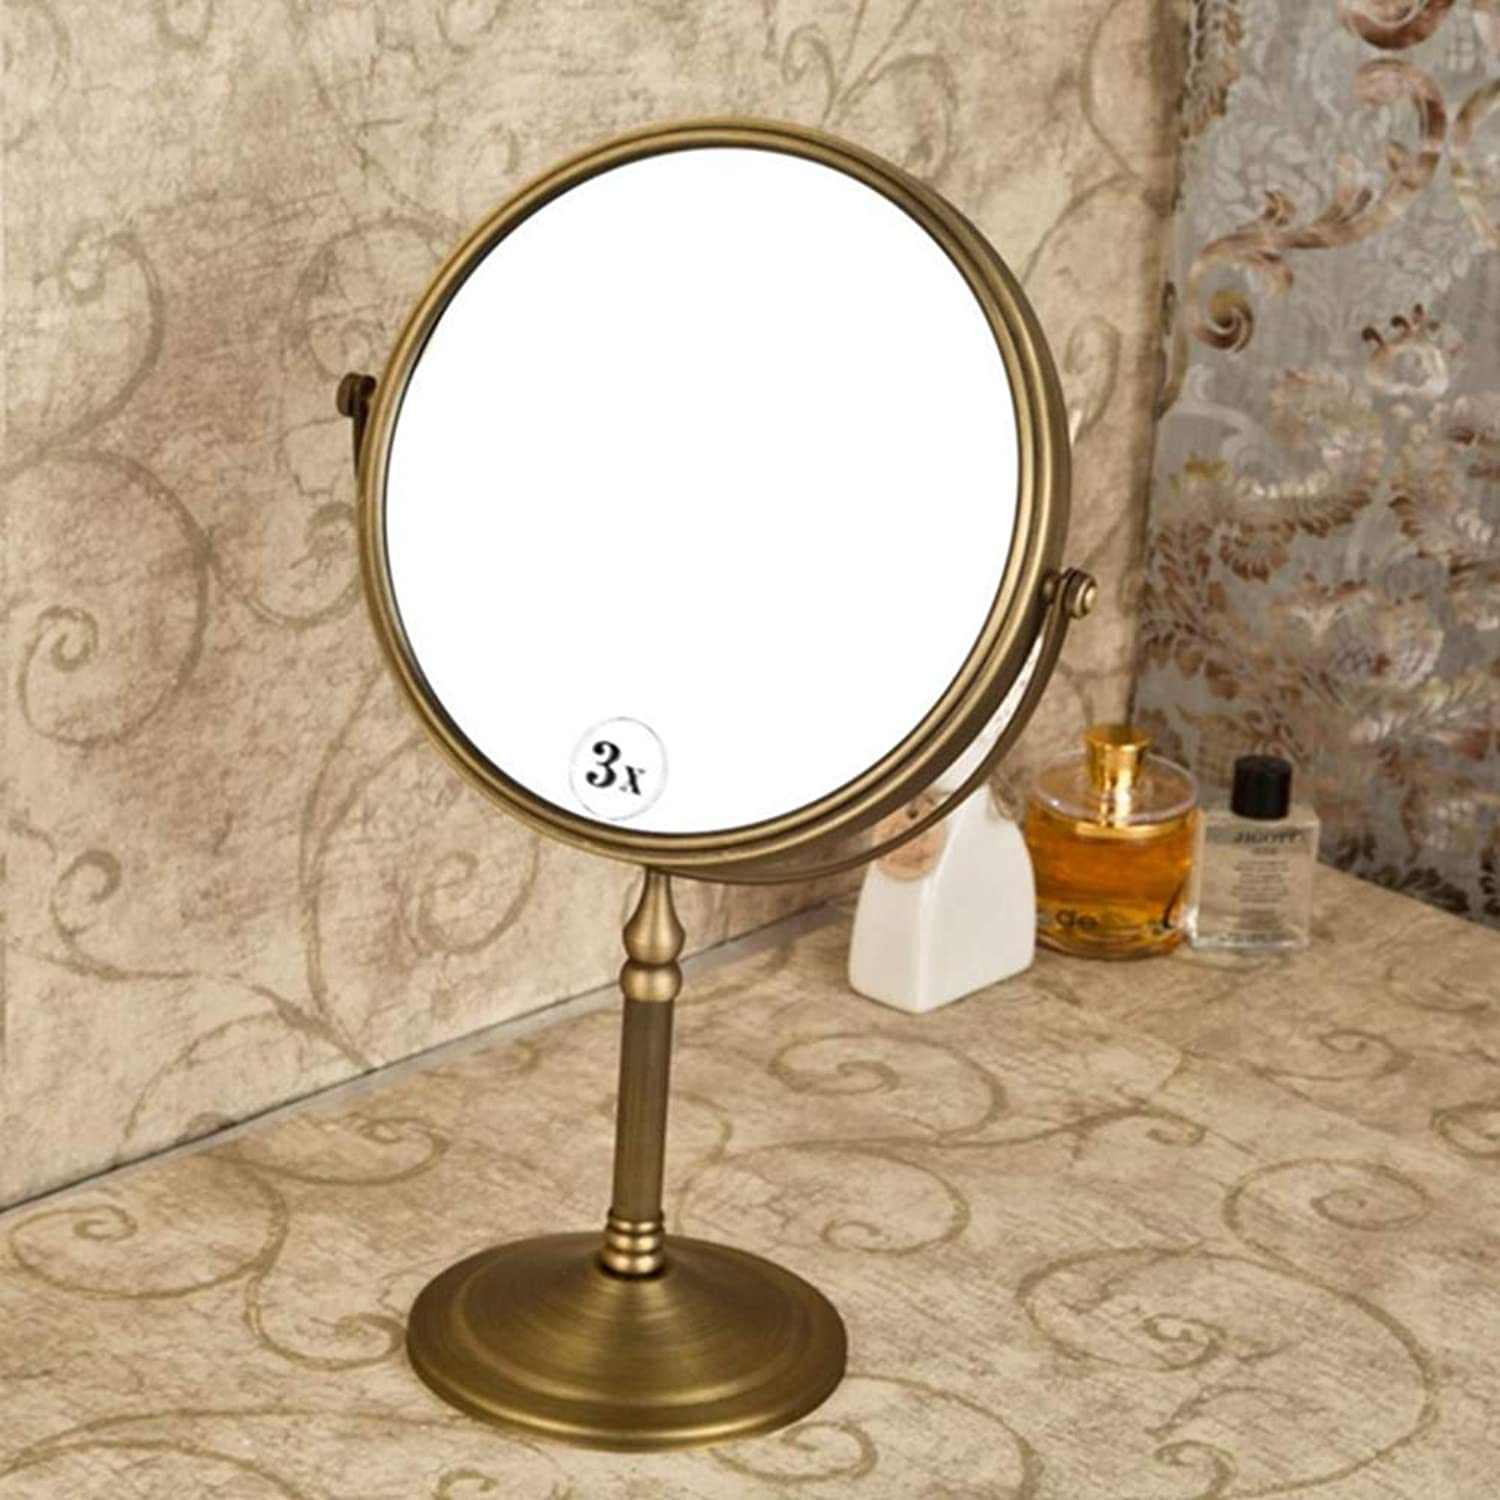 LUDSUY 8 Inch Tabletop Two Sided 360 Degree Swivel Mirror Antique Brass,Personal Make Up Round Mirrors Classic redatable